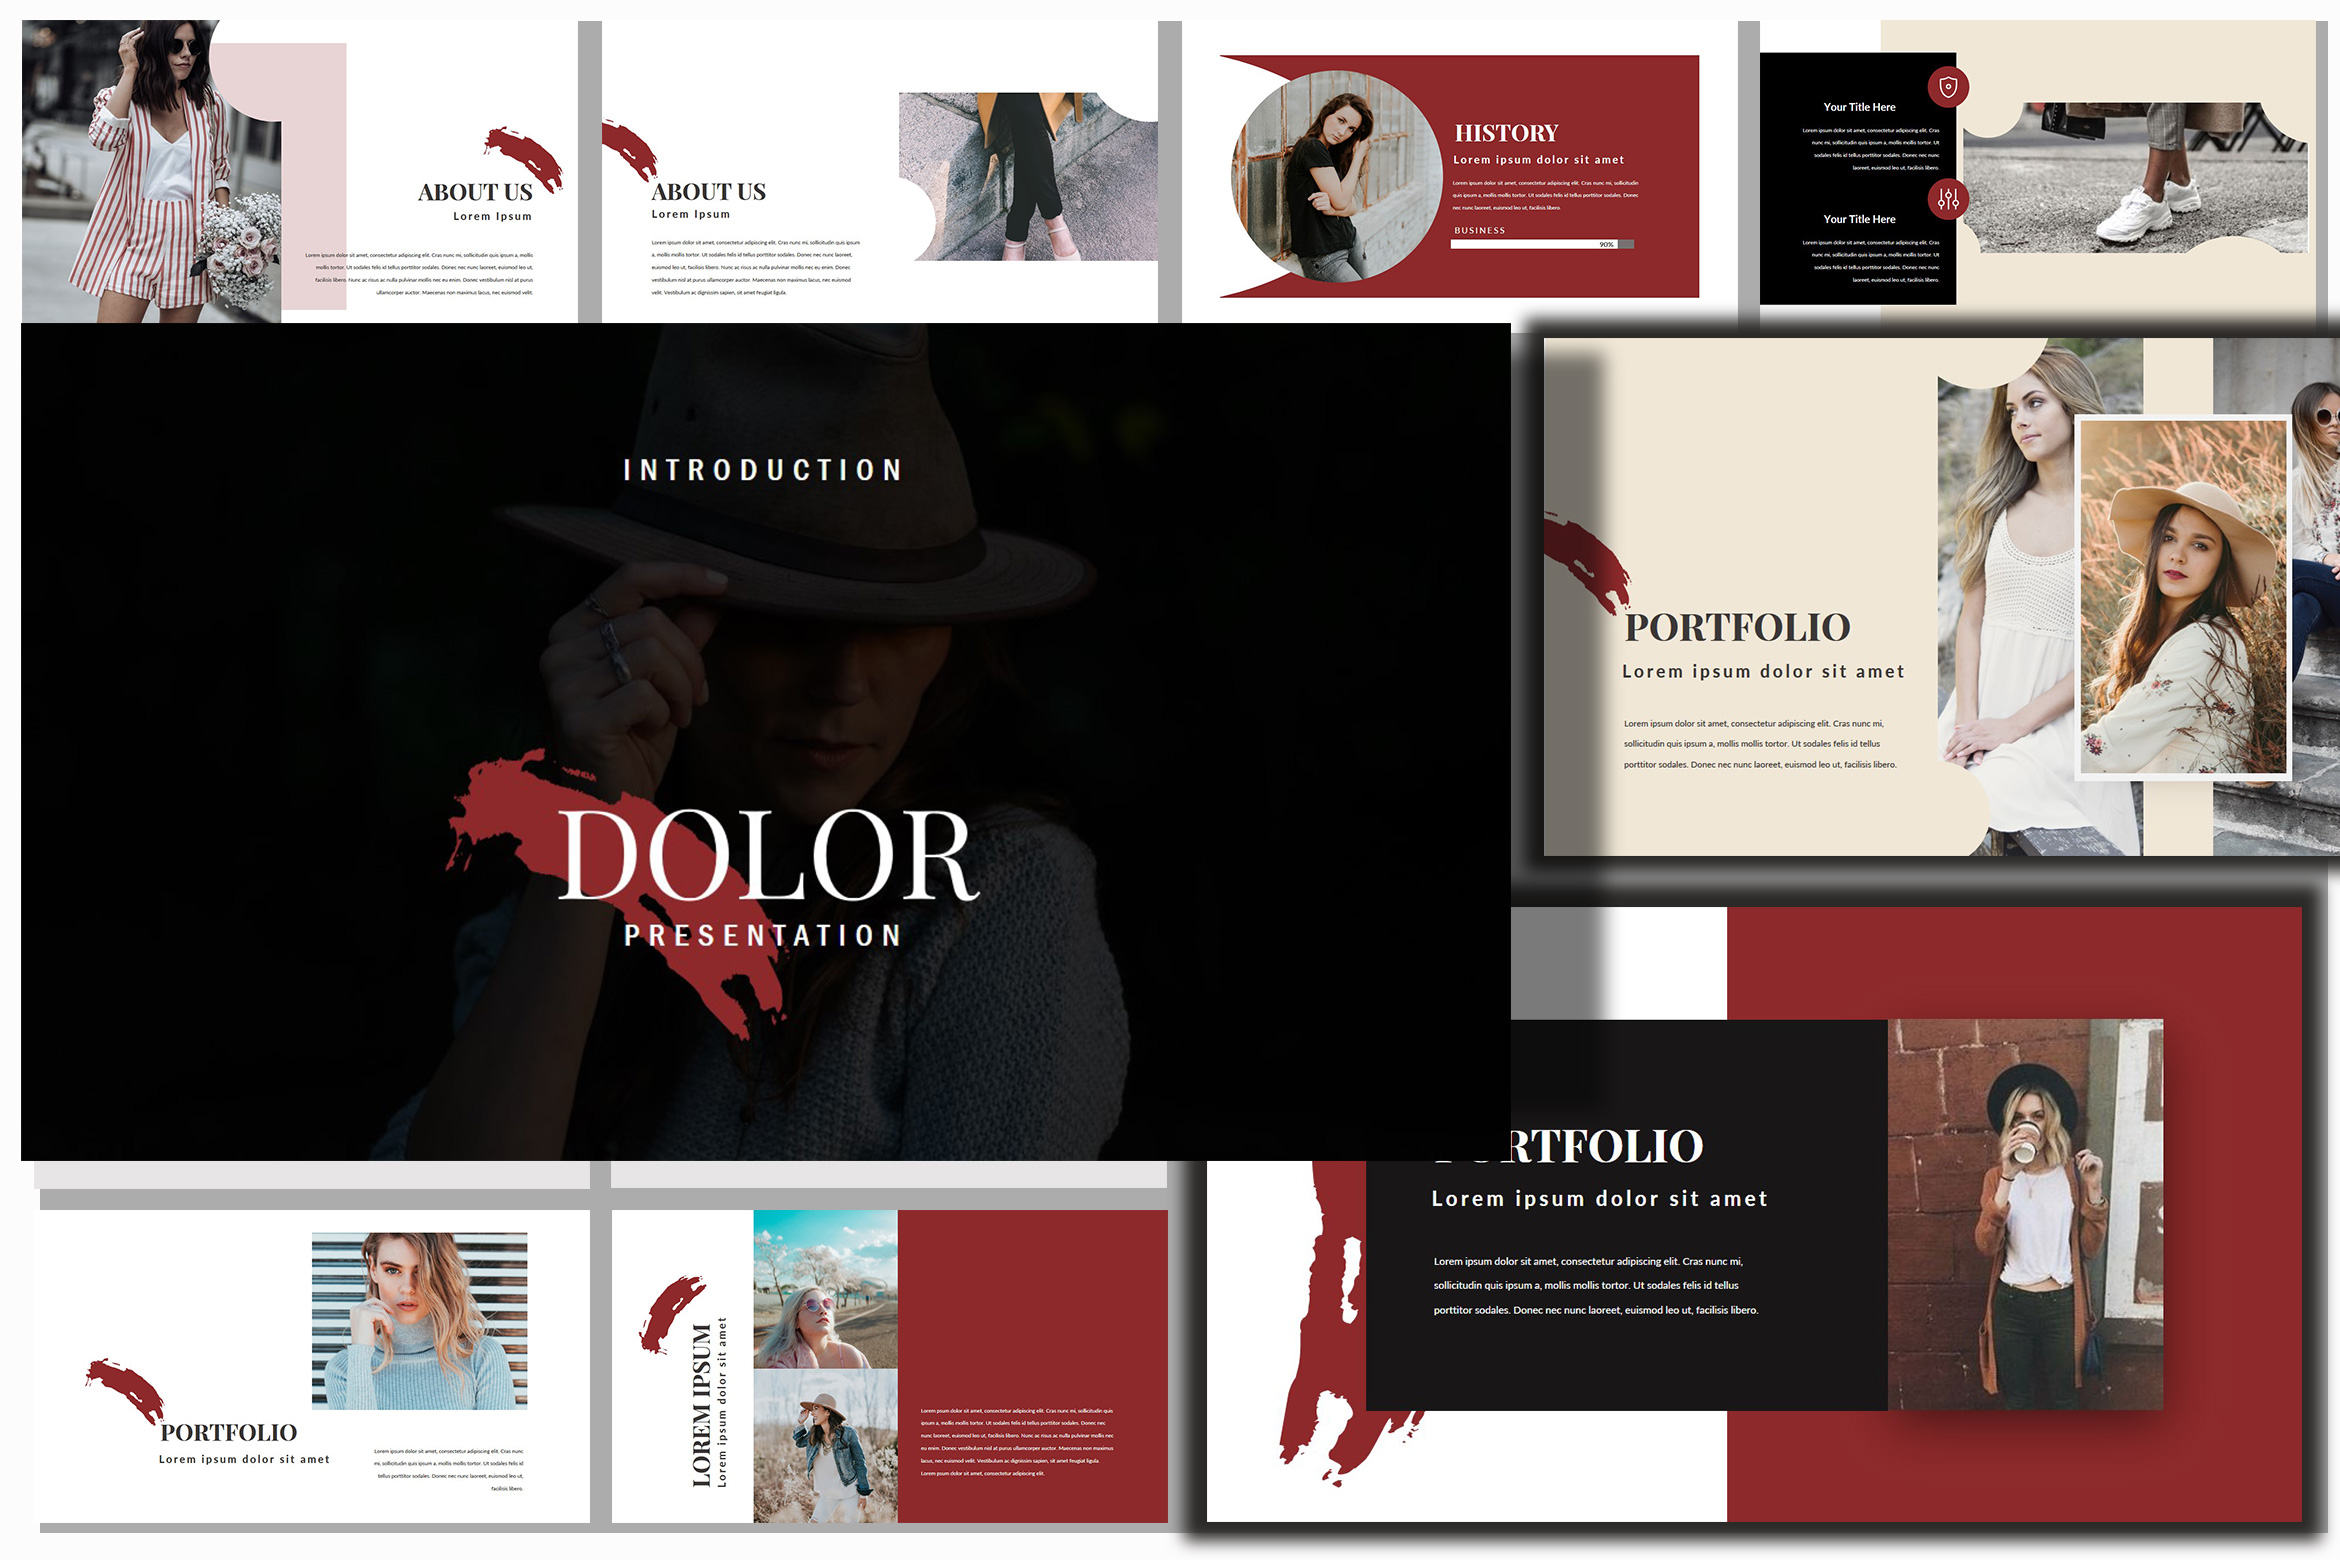 Dolor Stylish Google Slides Presentation example image 8